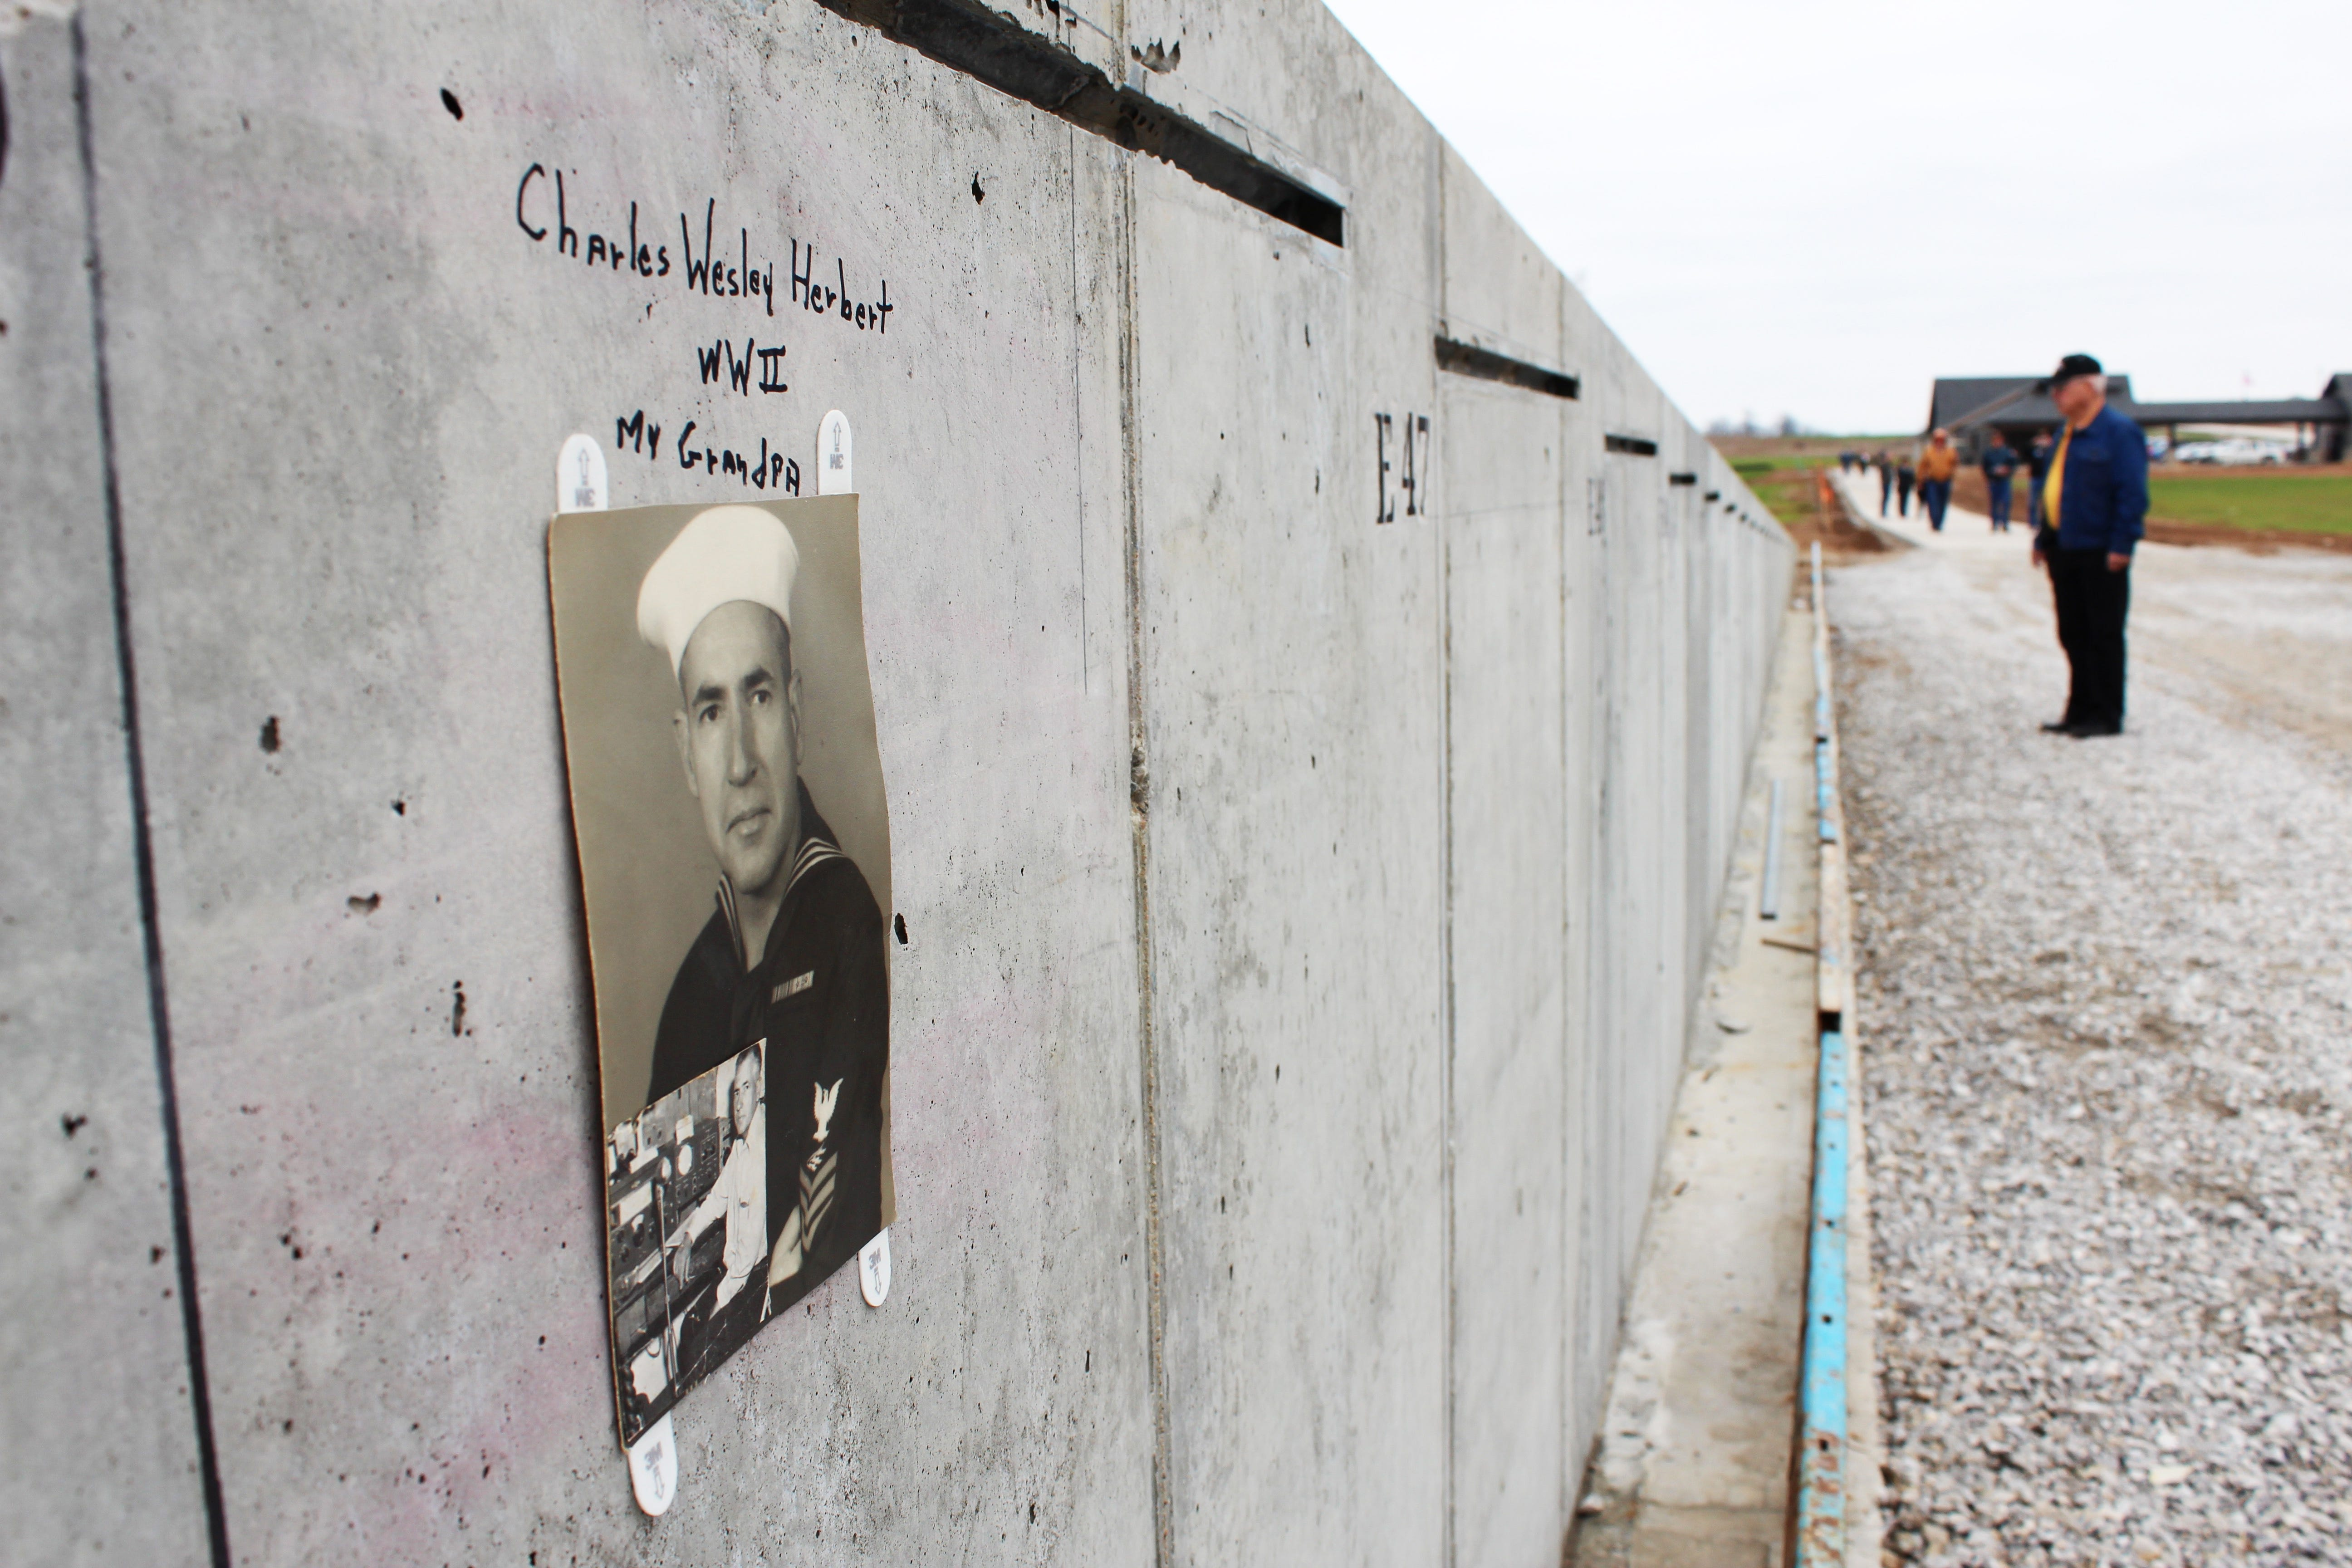 """Some visitors to the Missouri's National Veterans Memorial site for the """"Mark of Remembrance"""" event included photos of their loved ones. The signatures and photos were left in place as the panels were installed, making them a permanent, if hidden, part of the monument."""